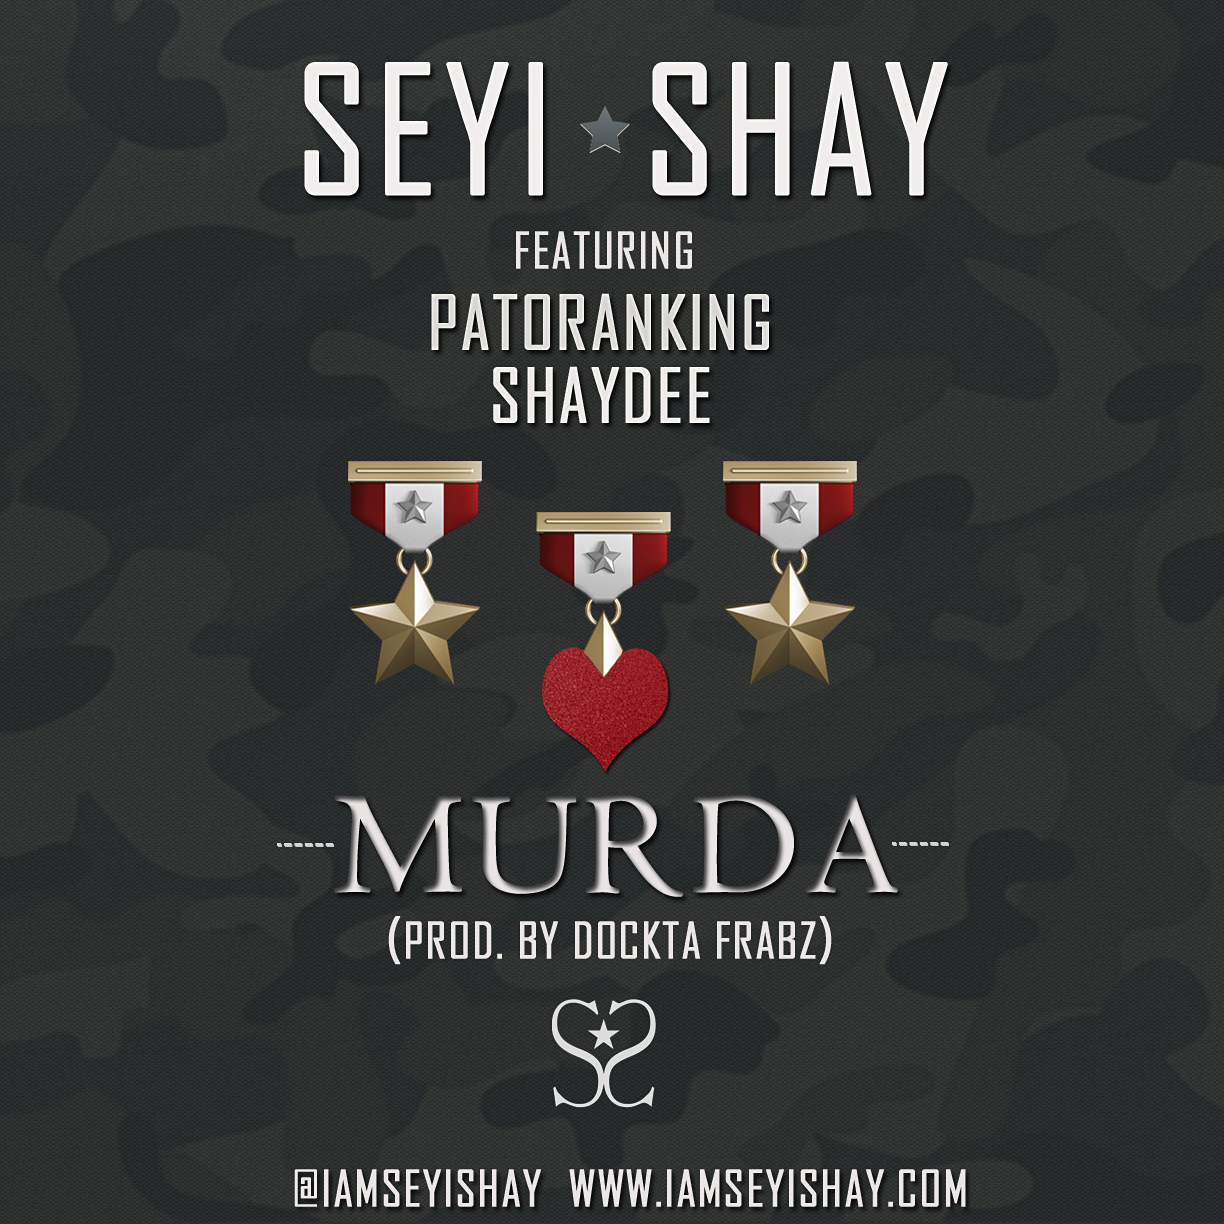 Seyi Shay ft Patoranking and Shaydee_Murda_